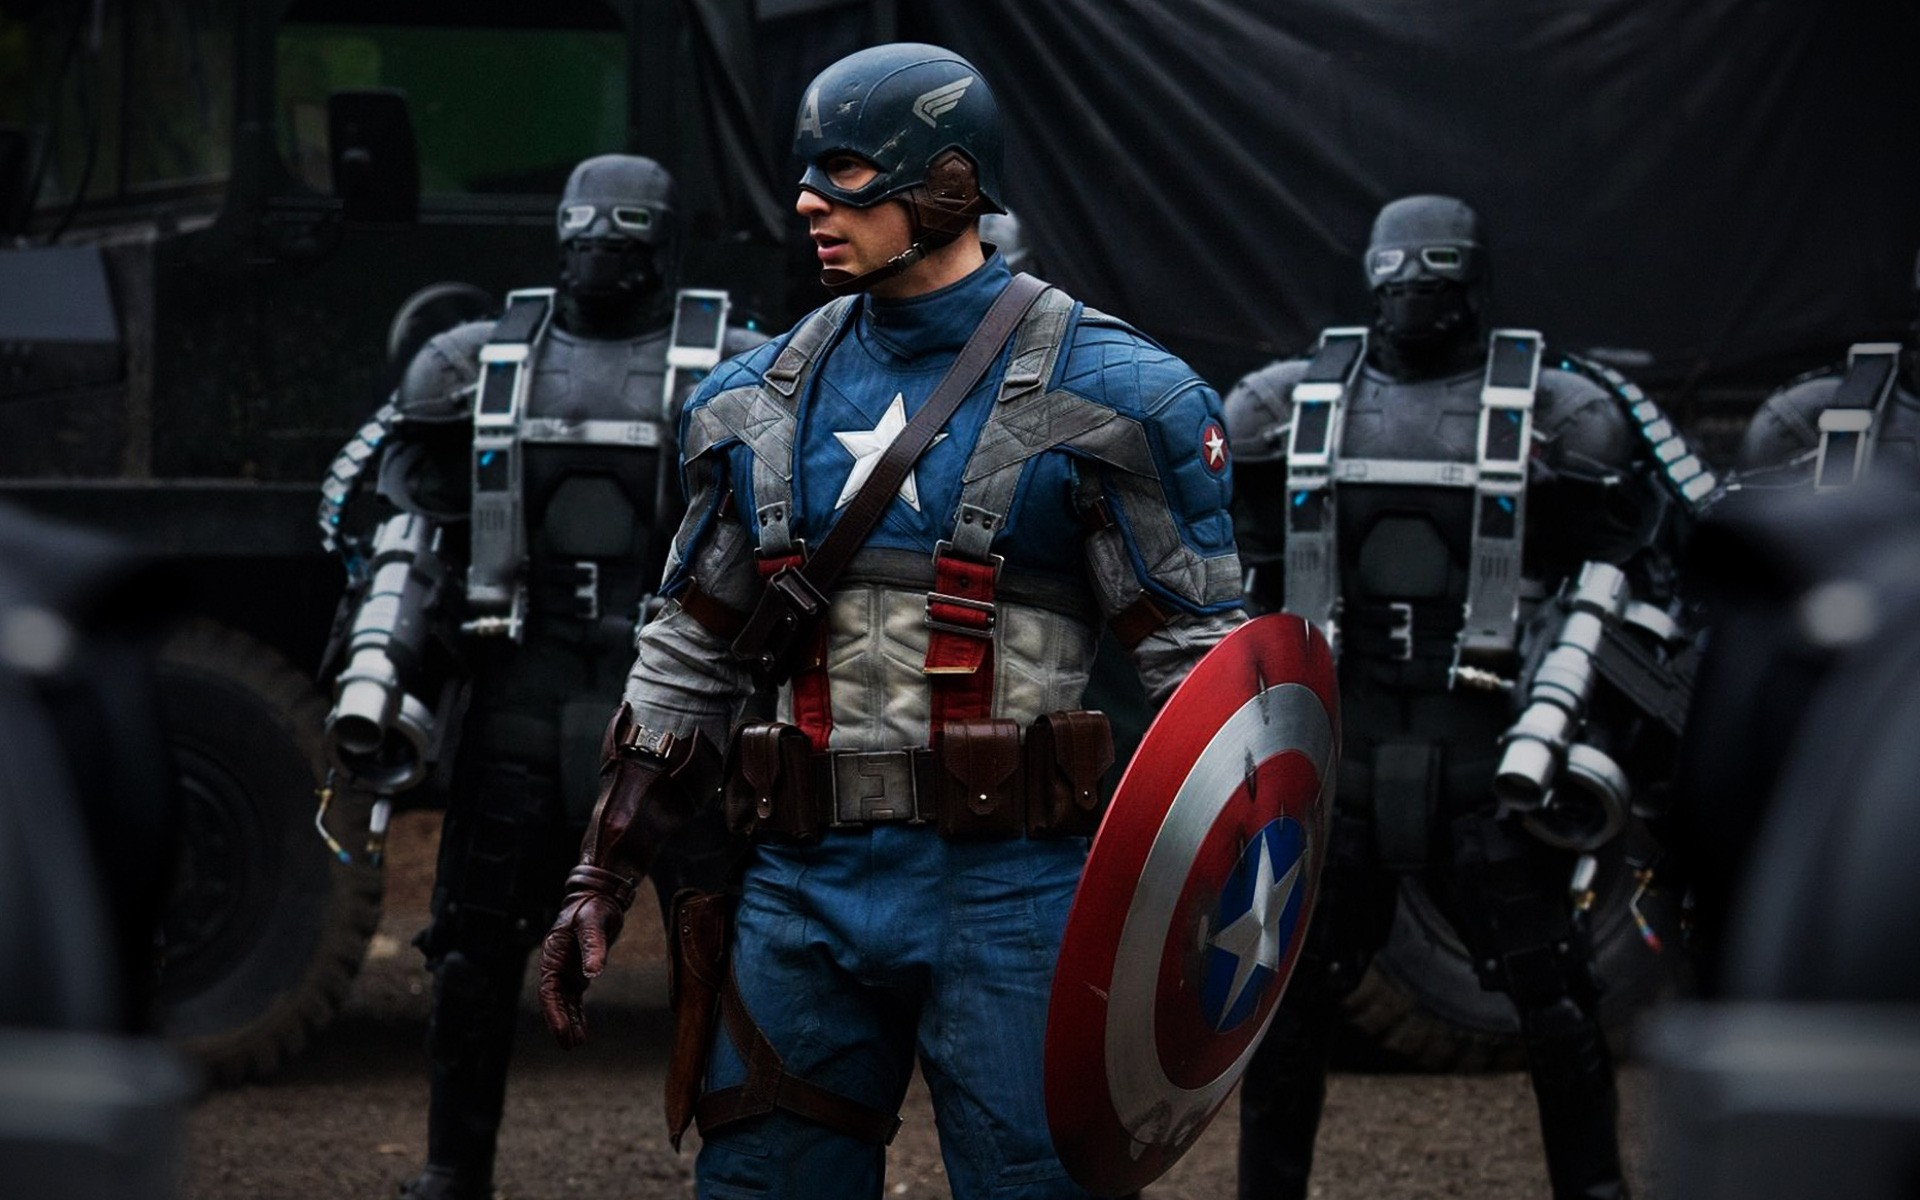 Movies Vehicle Competition Battle Police Military Weapon Offense Man Track Adult Captain America Chris Evans Steve